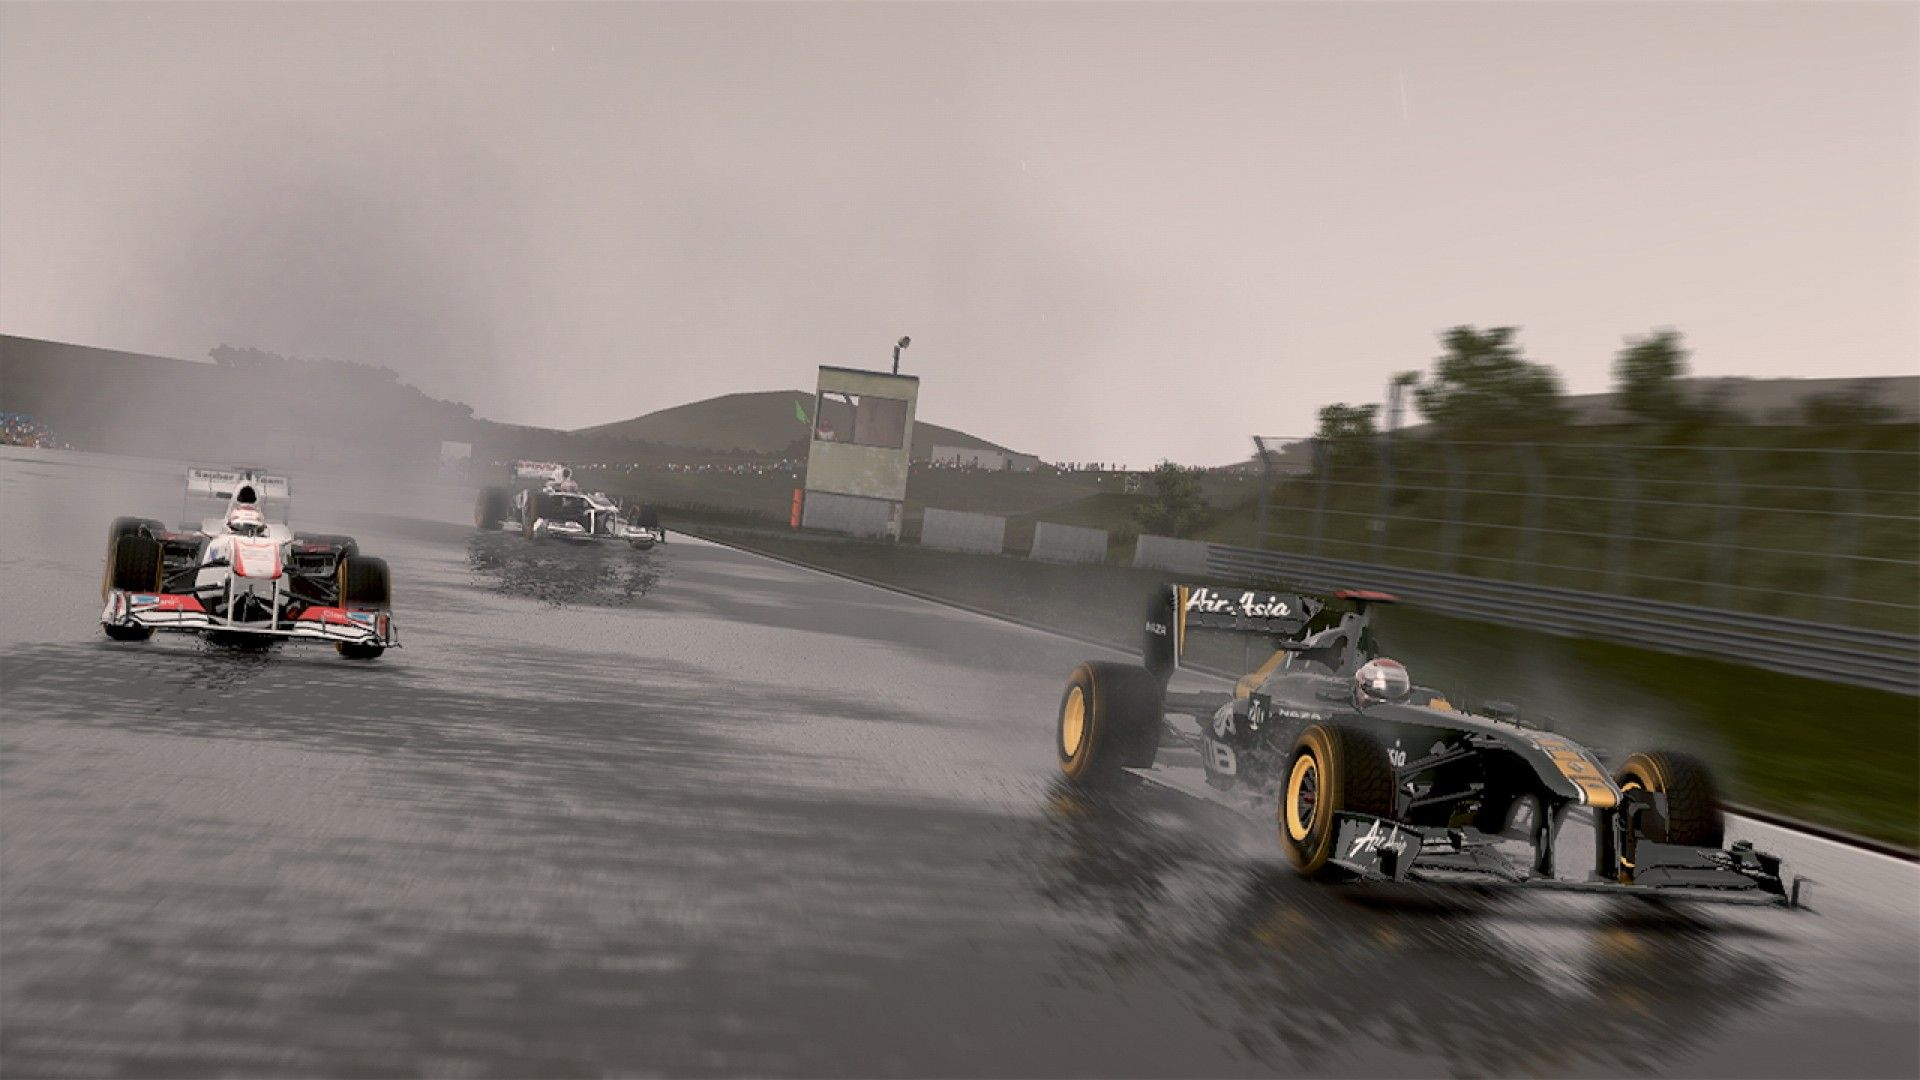 f1 2011 on steam rh store steampowered com F1 Helmet 2013 F1 Cars